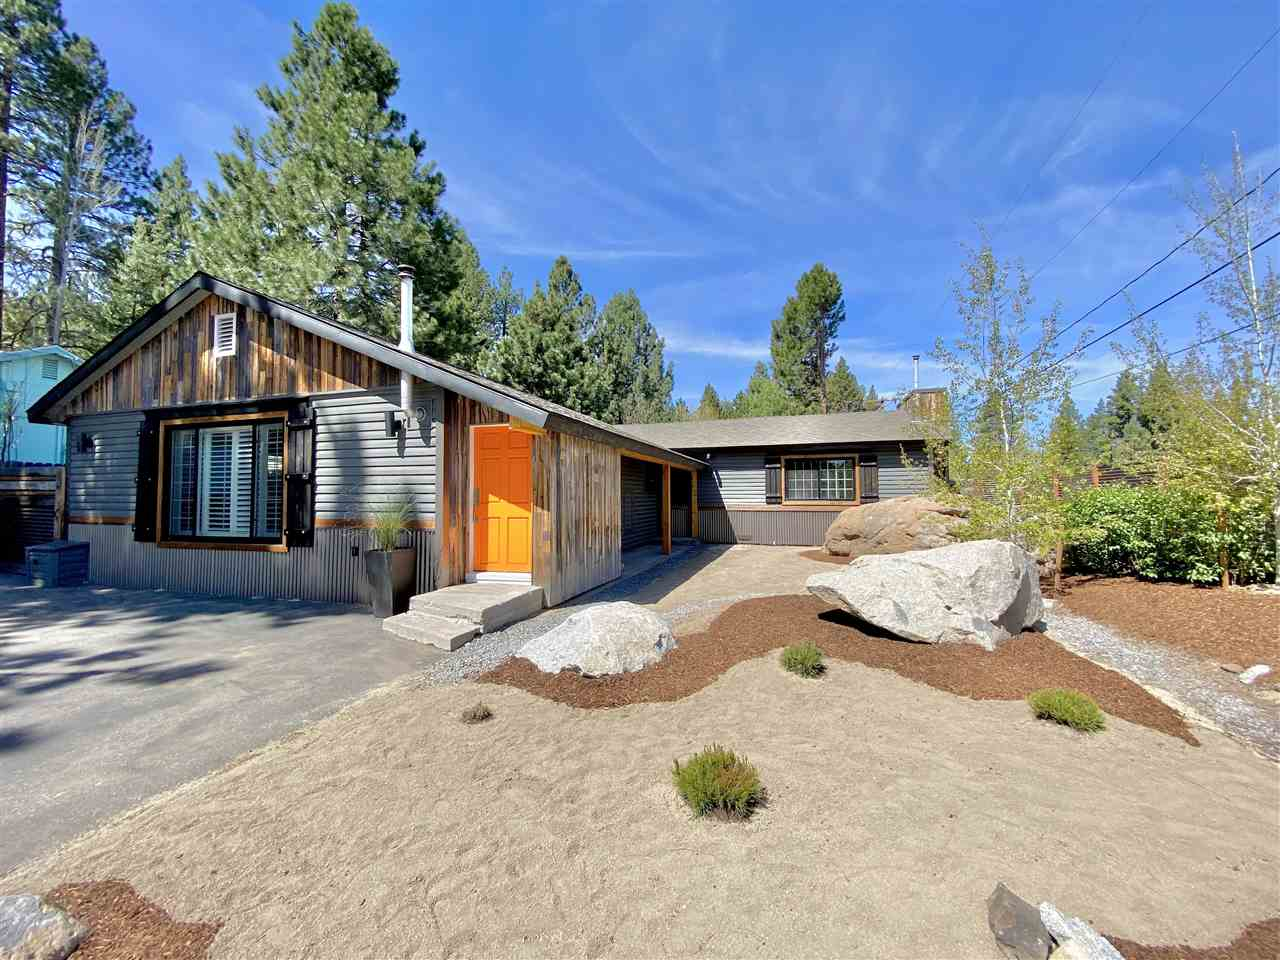 Image for 10854 Star Pine Road, Truckee, CA 96161